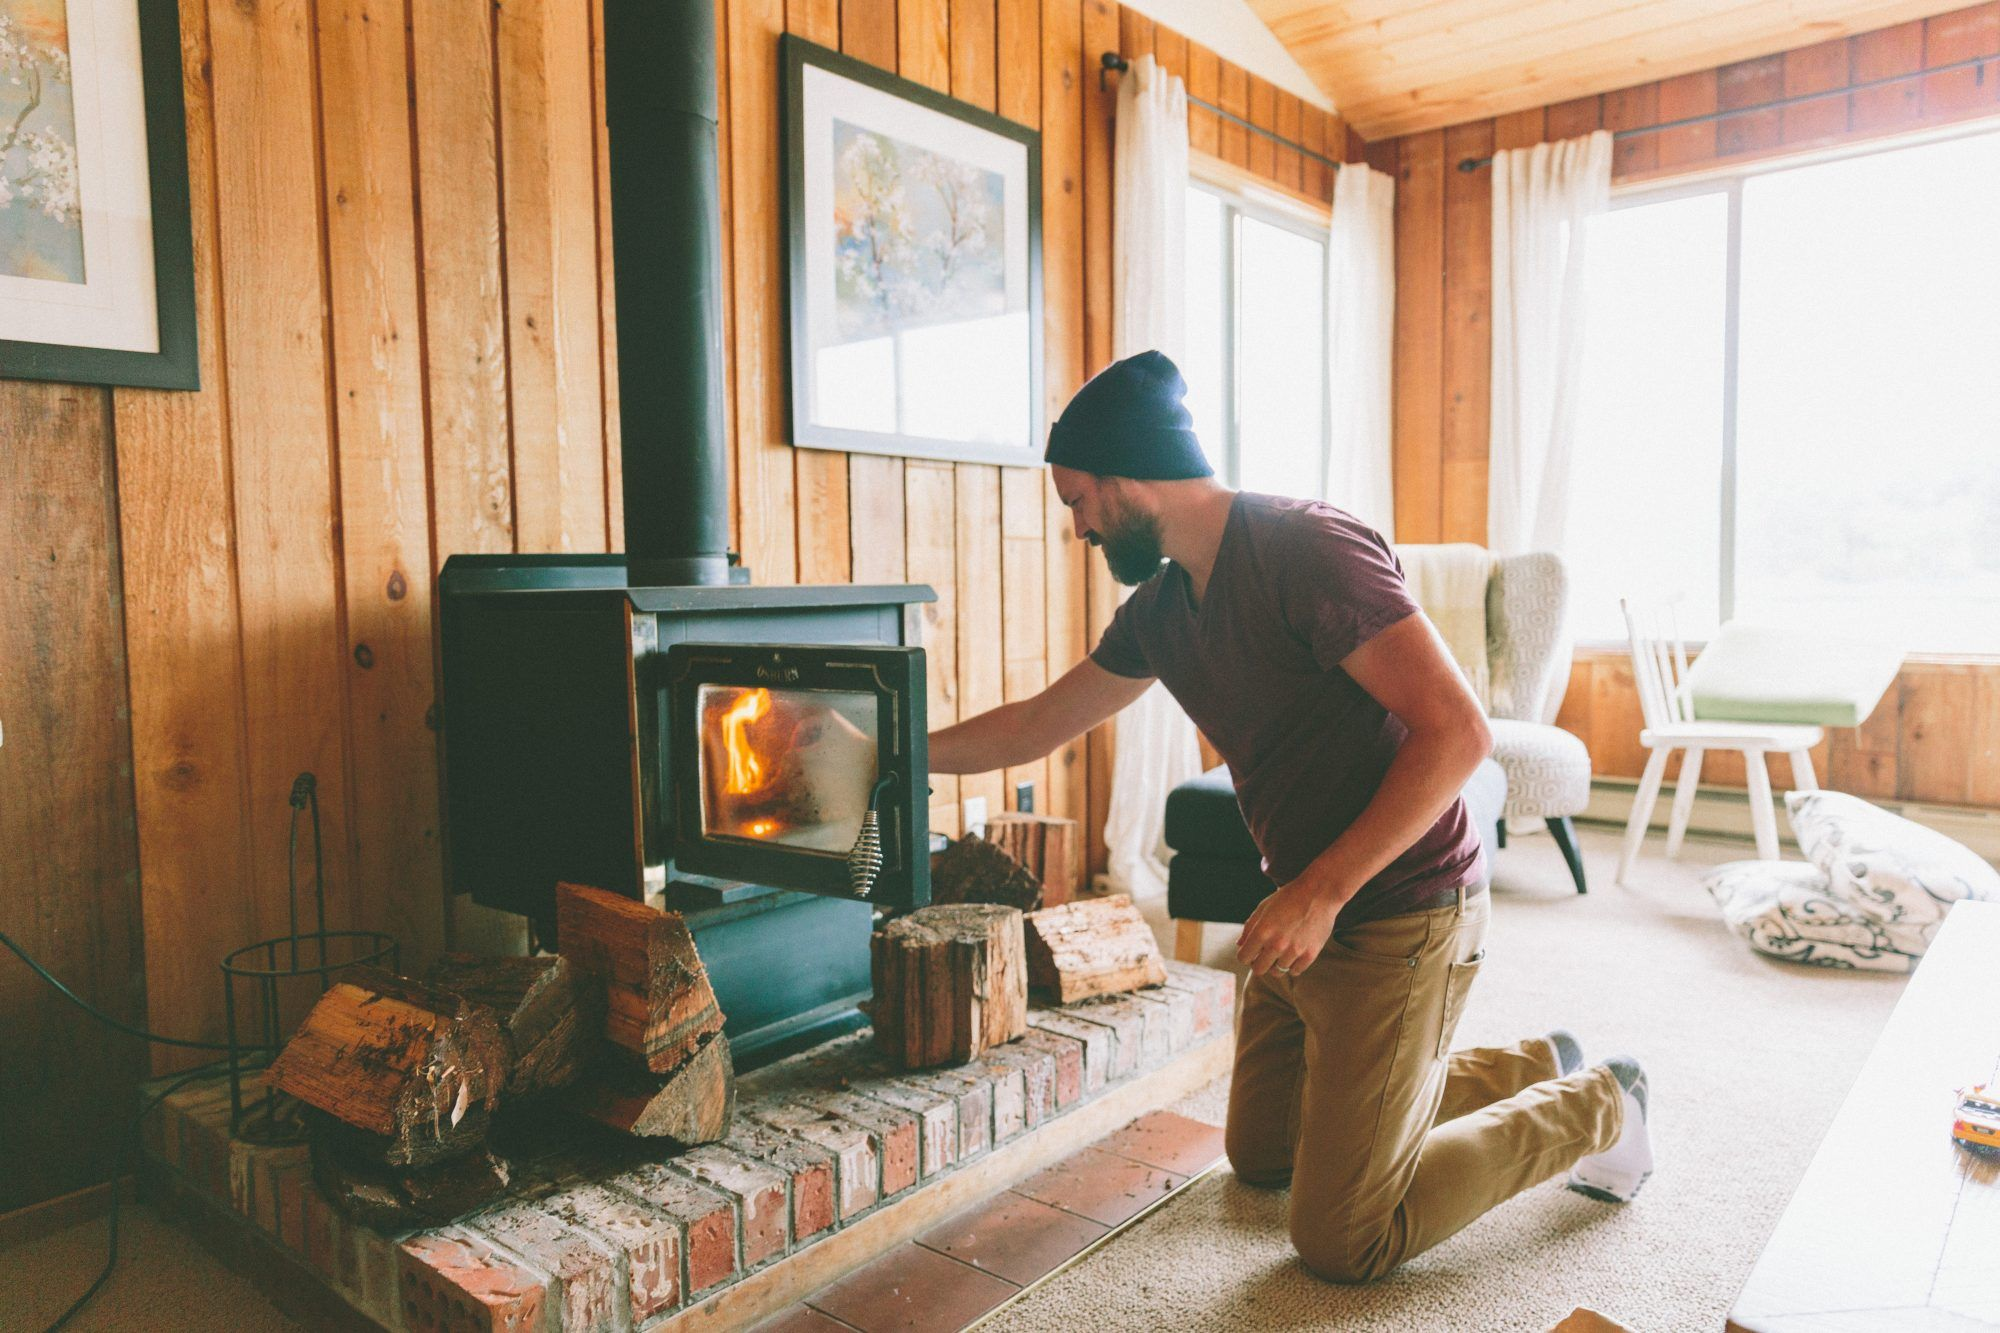 These Cabin Inspired Decor Ideas Will Turn Your Home Into A Cozy